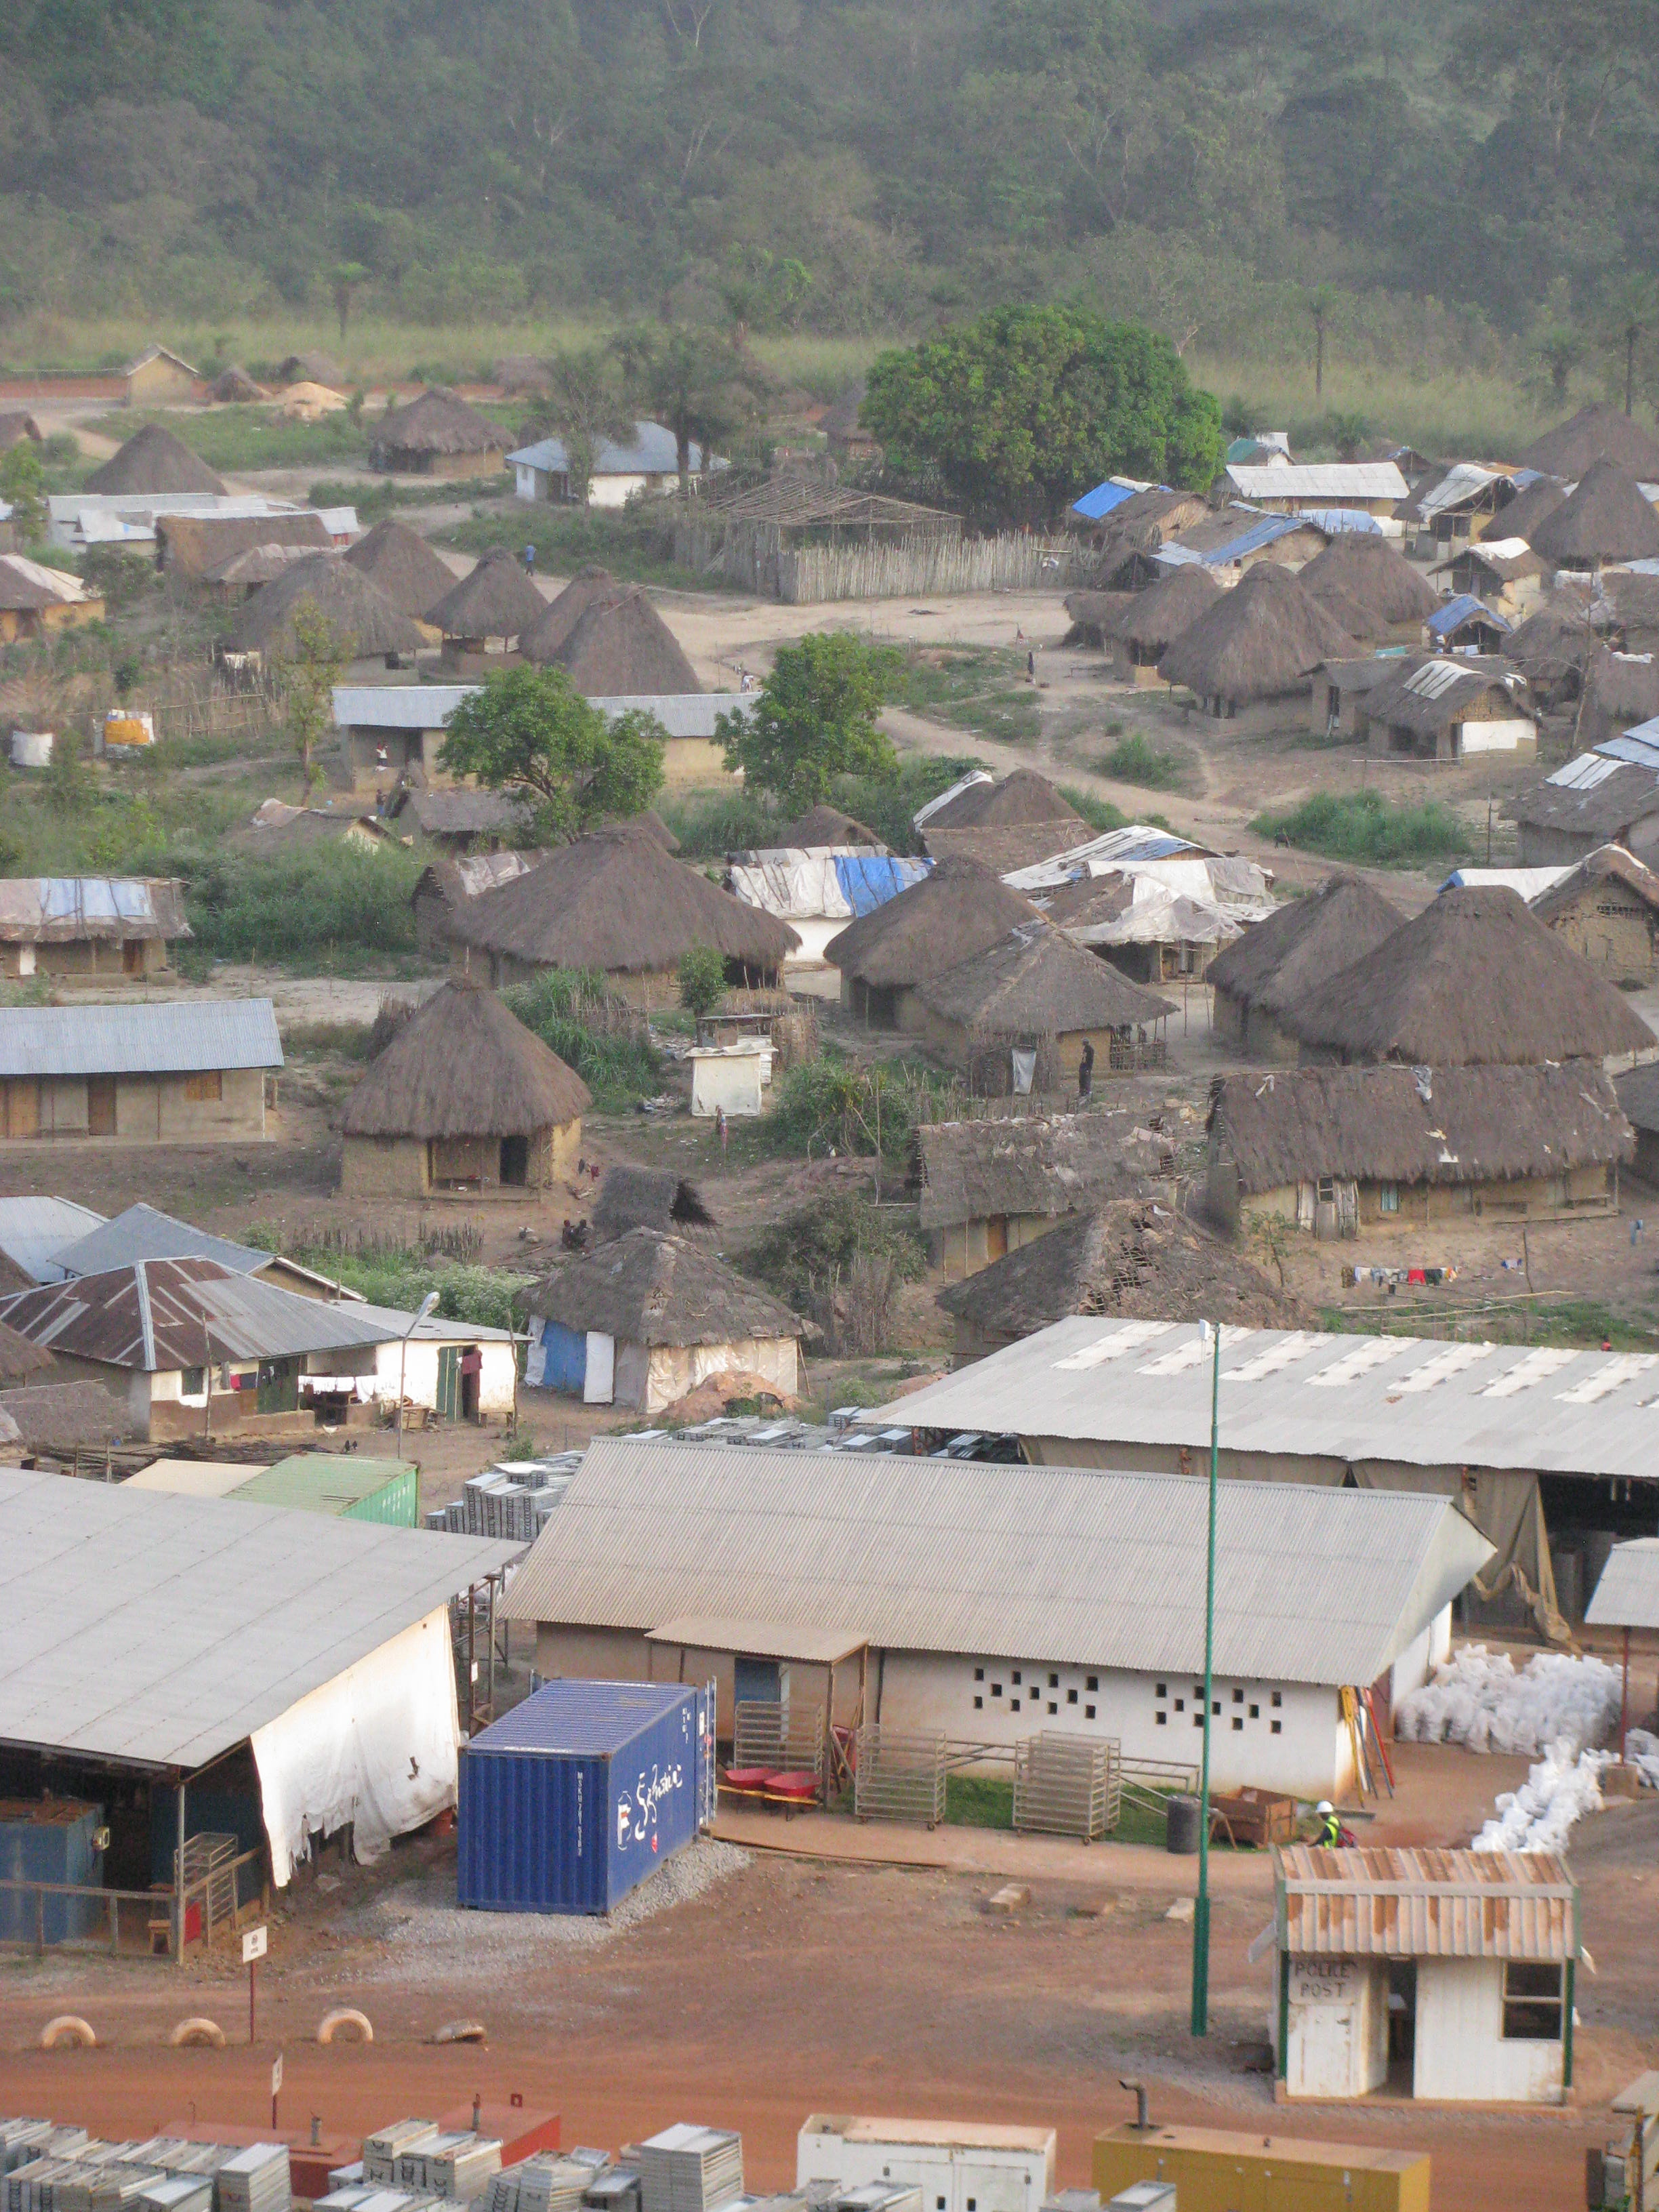 Village allowed to grow before resettlement